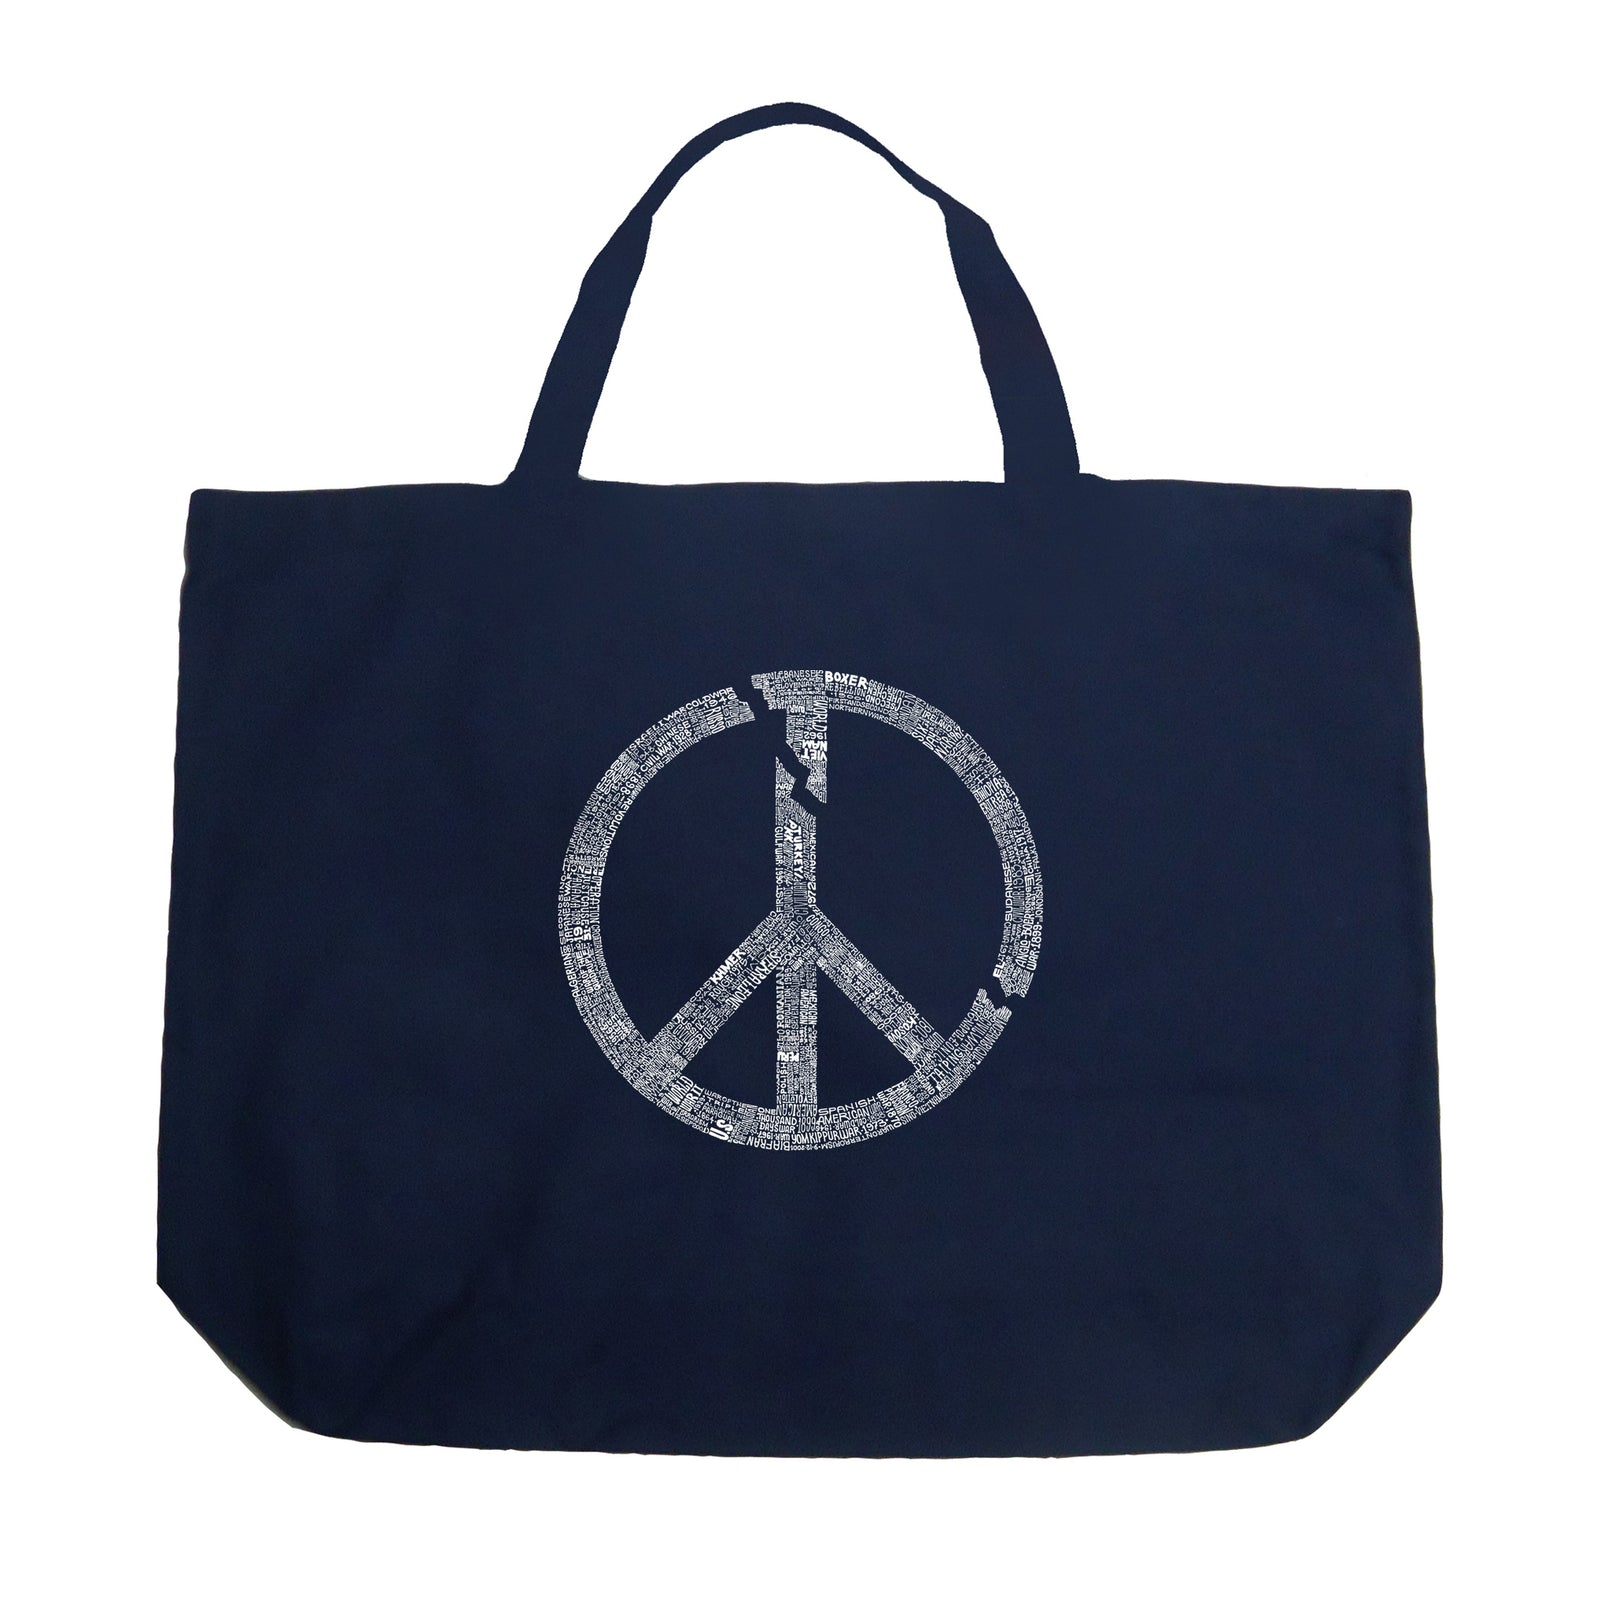 Large Tote Bag - EVERY MAJOR WORLD CONFLICT SINCE 1770